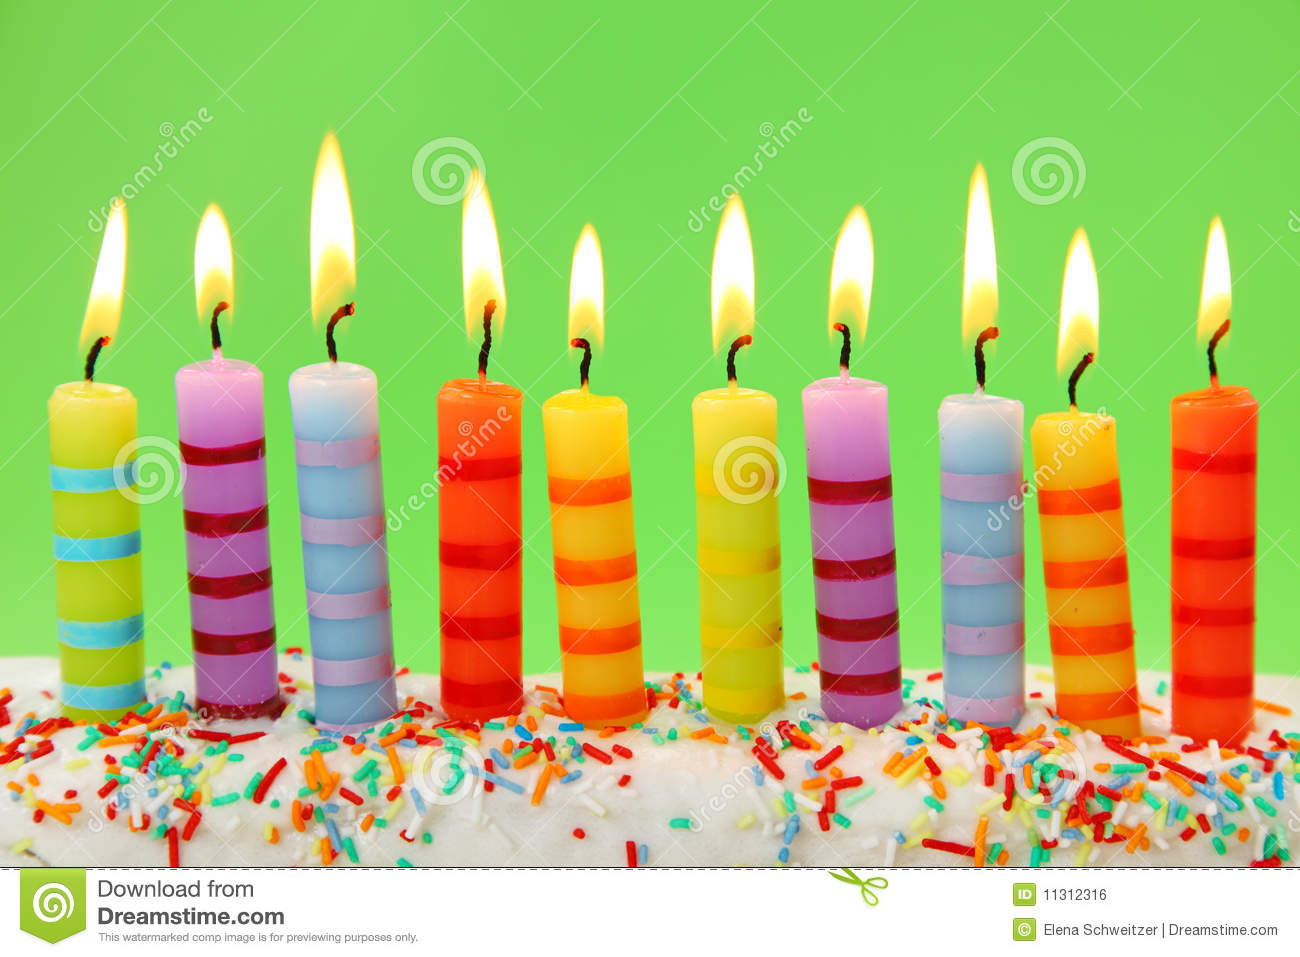 Free birthday candle clipart clipart free Wide birthday cake with no candles clipart - ClipartFest clipart free